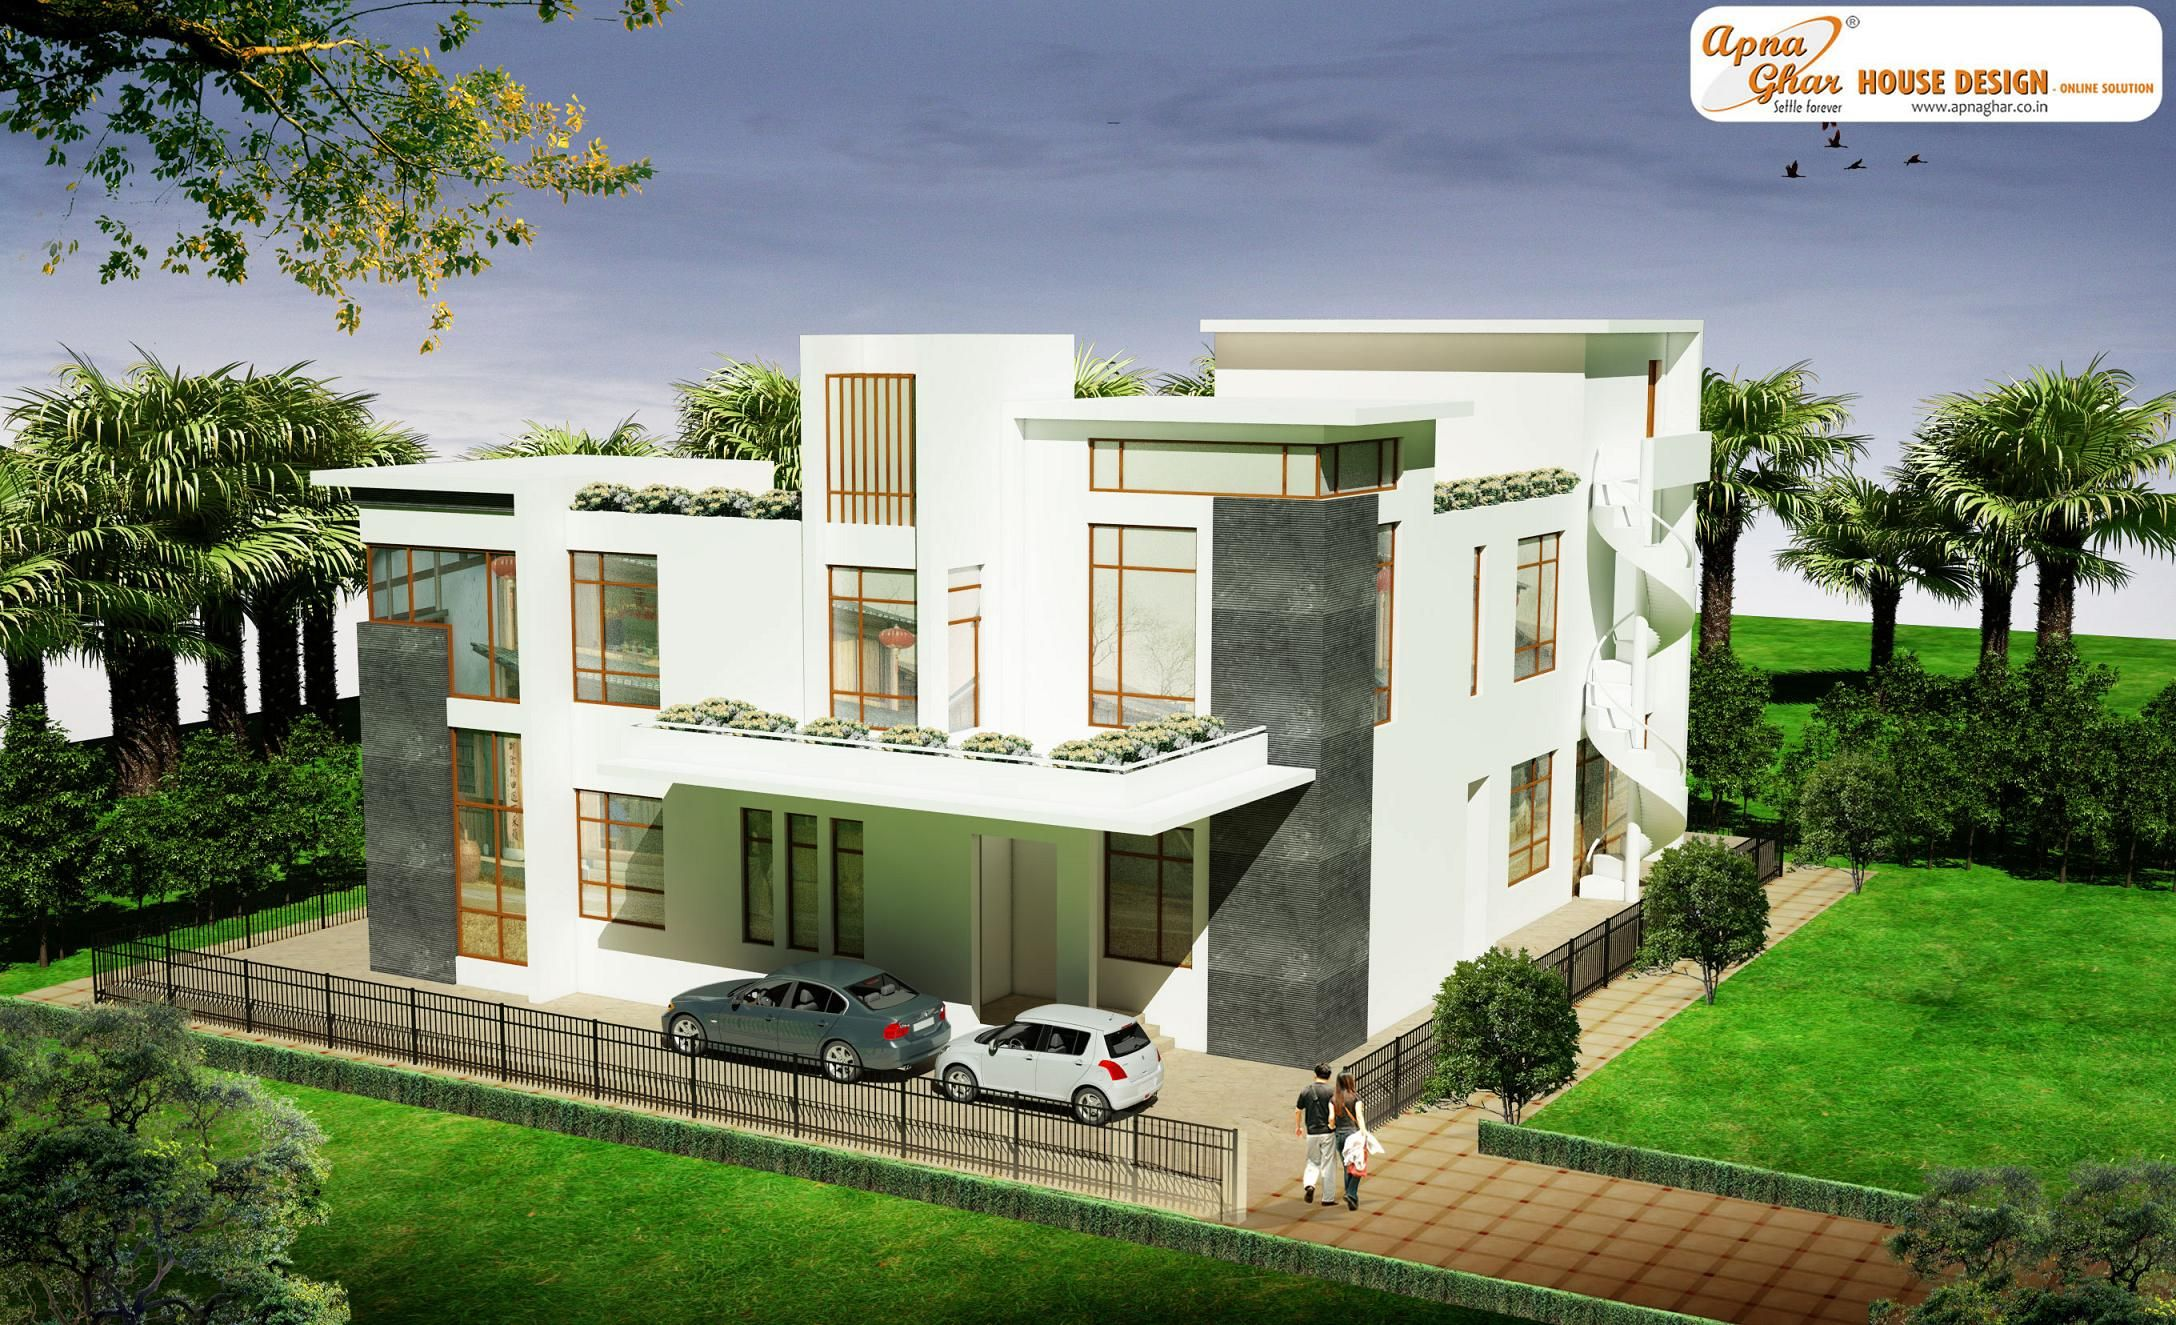 4 bedrooms bungalow house design in 504m2 21m x 24m like share